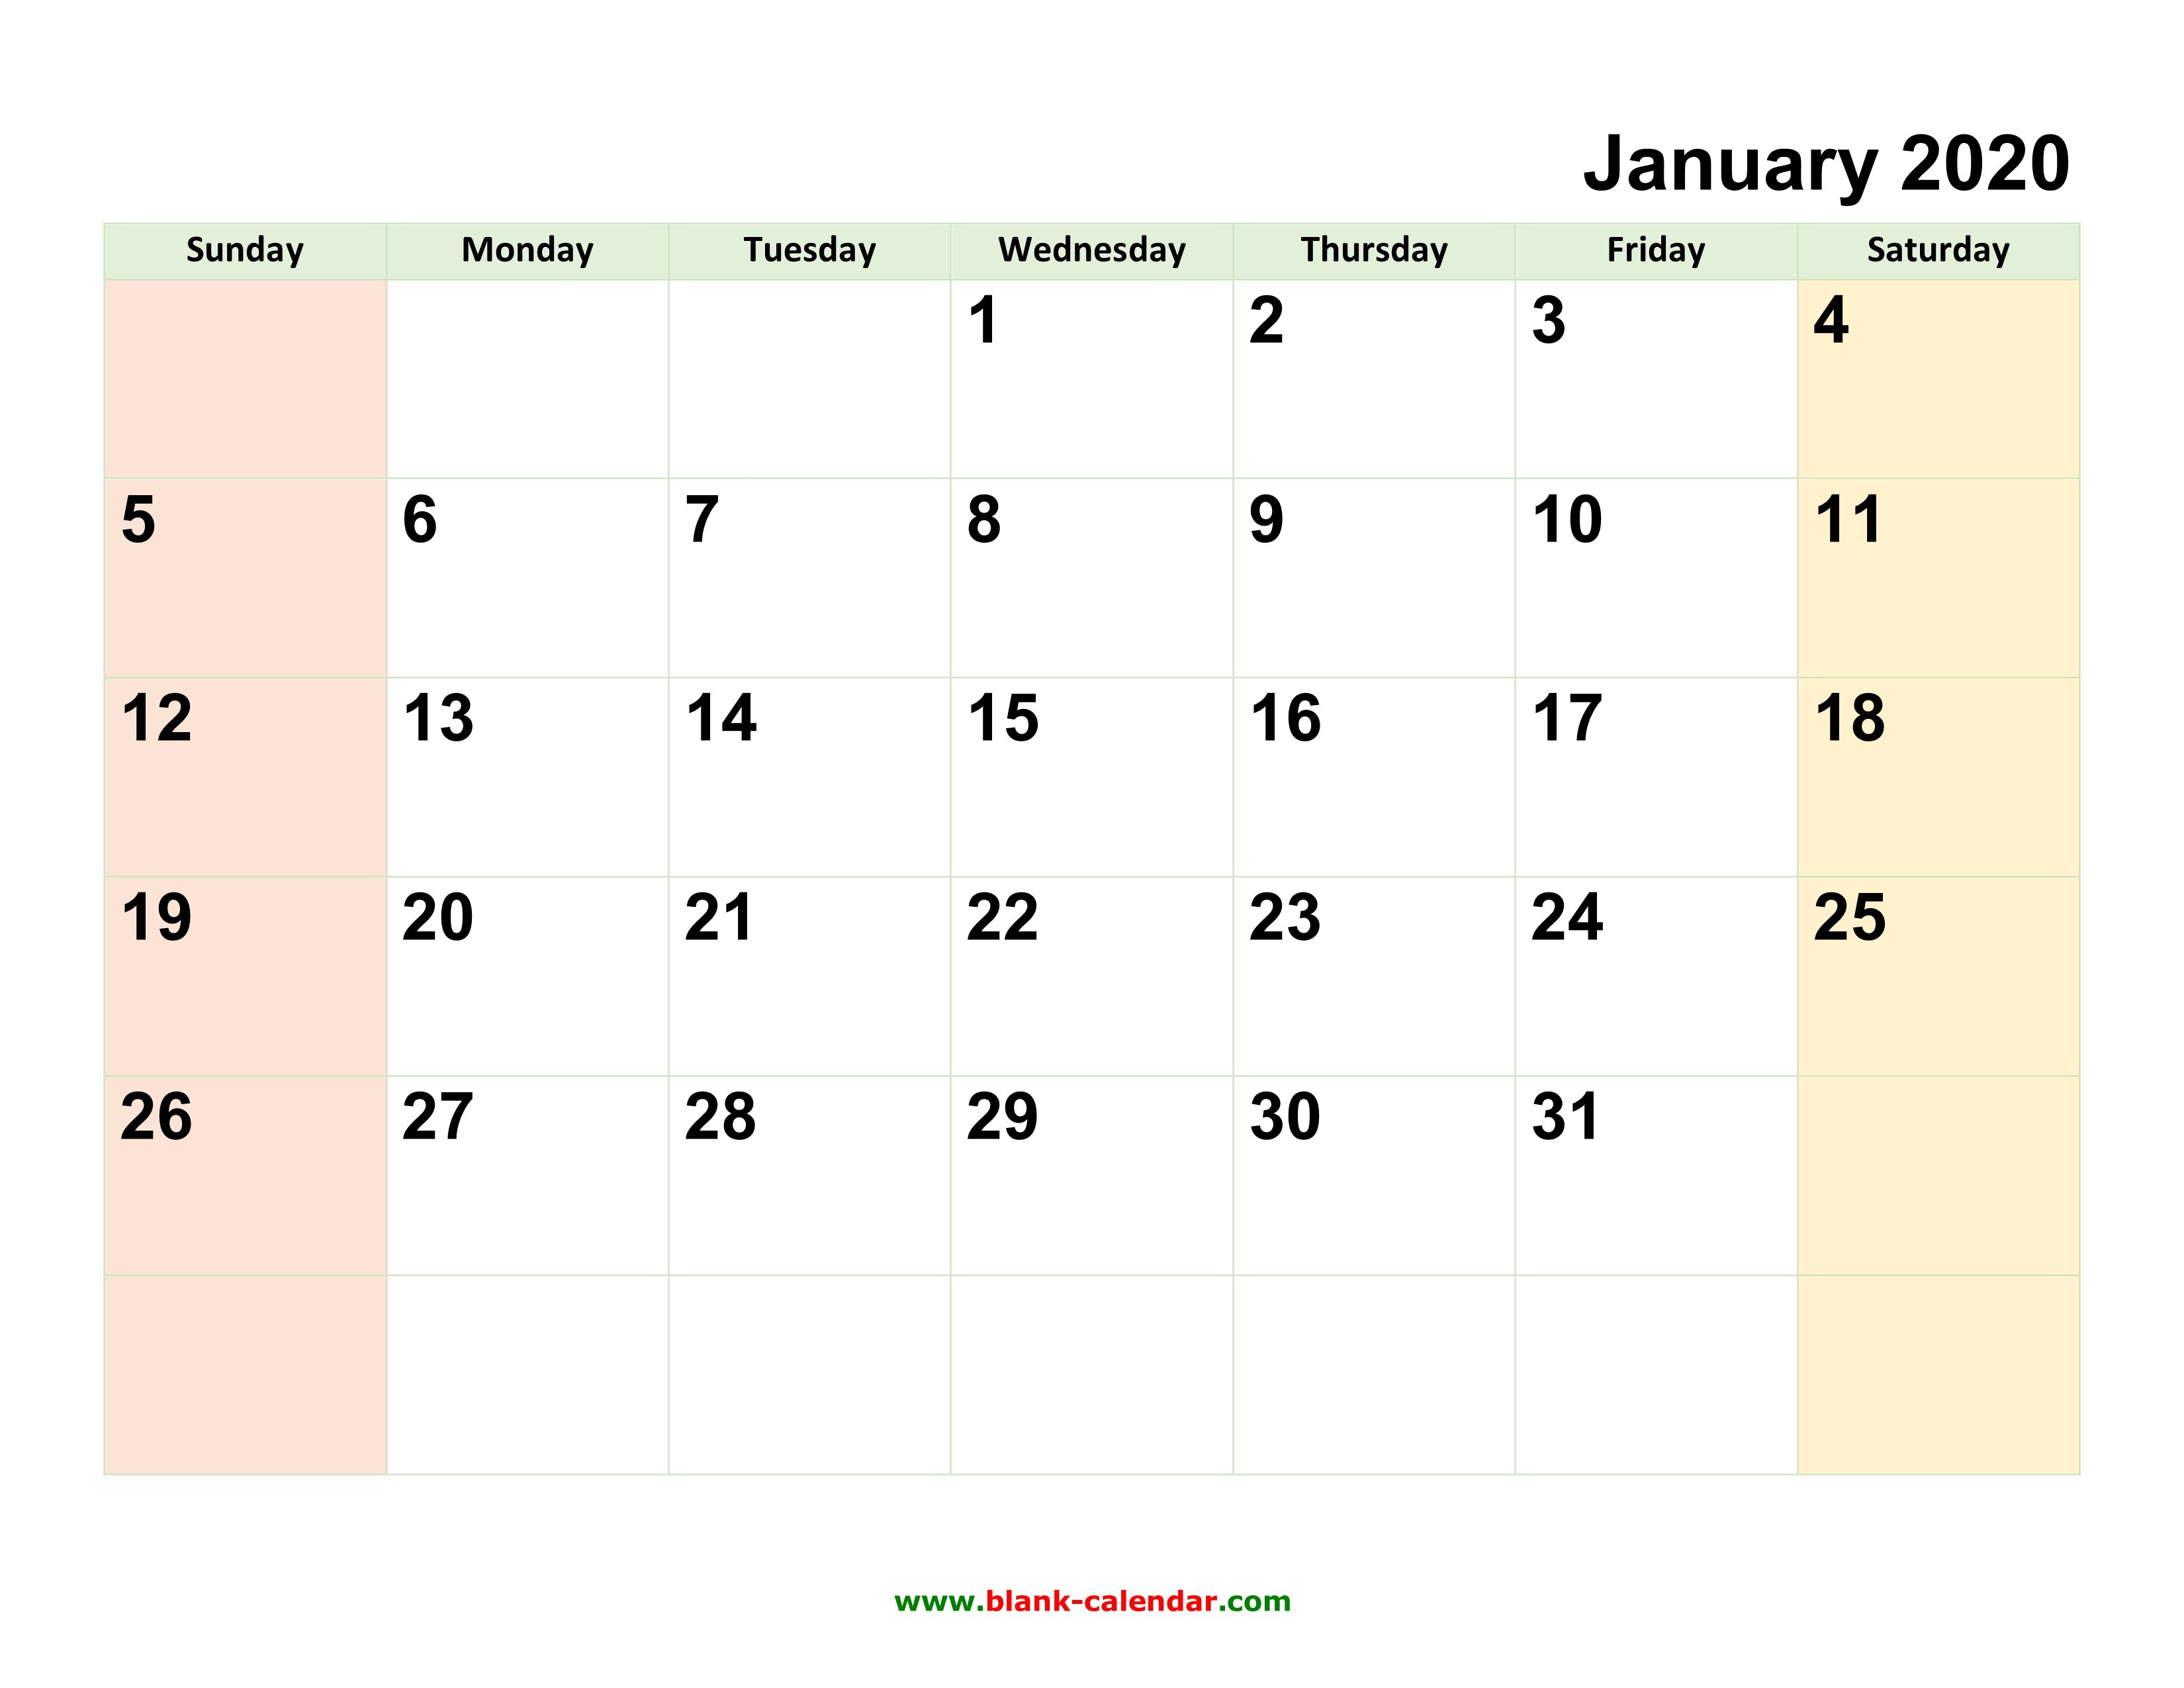 Monthly Calendar 2020 | Free Download, Editable And Printable I Need A Monthly Calendar That I Can Edit